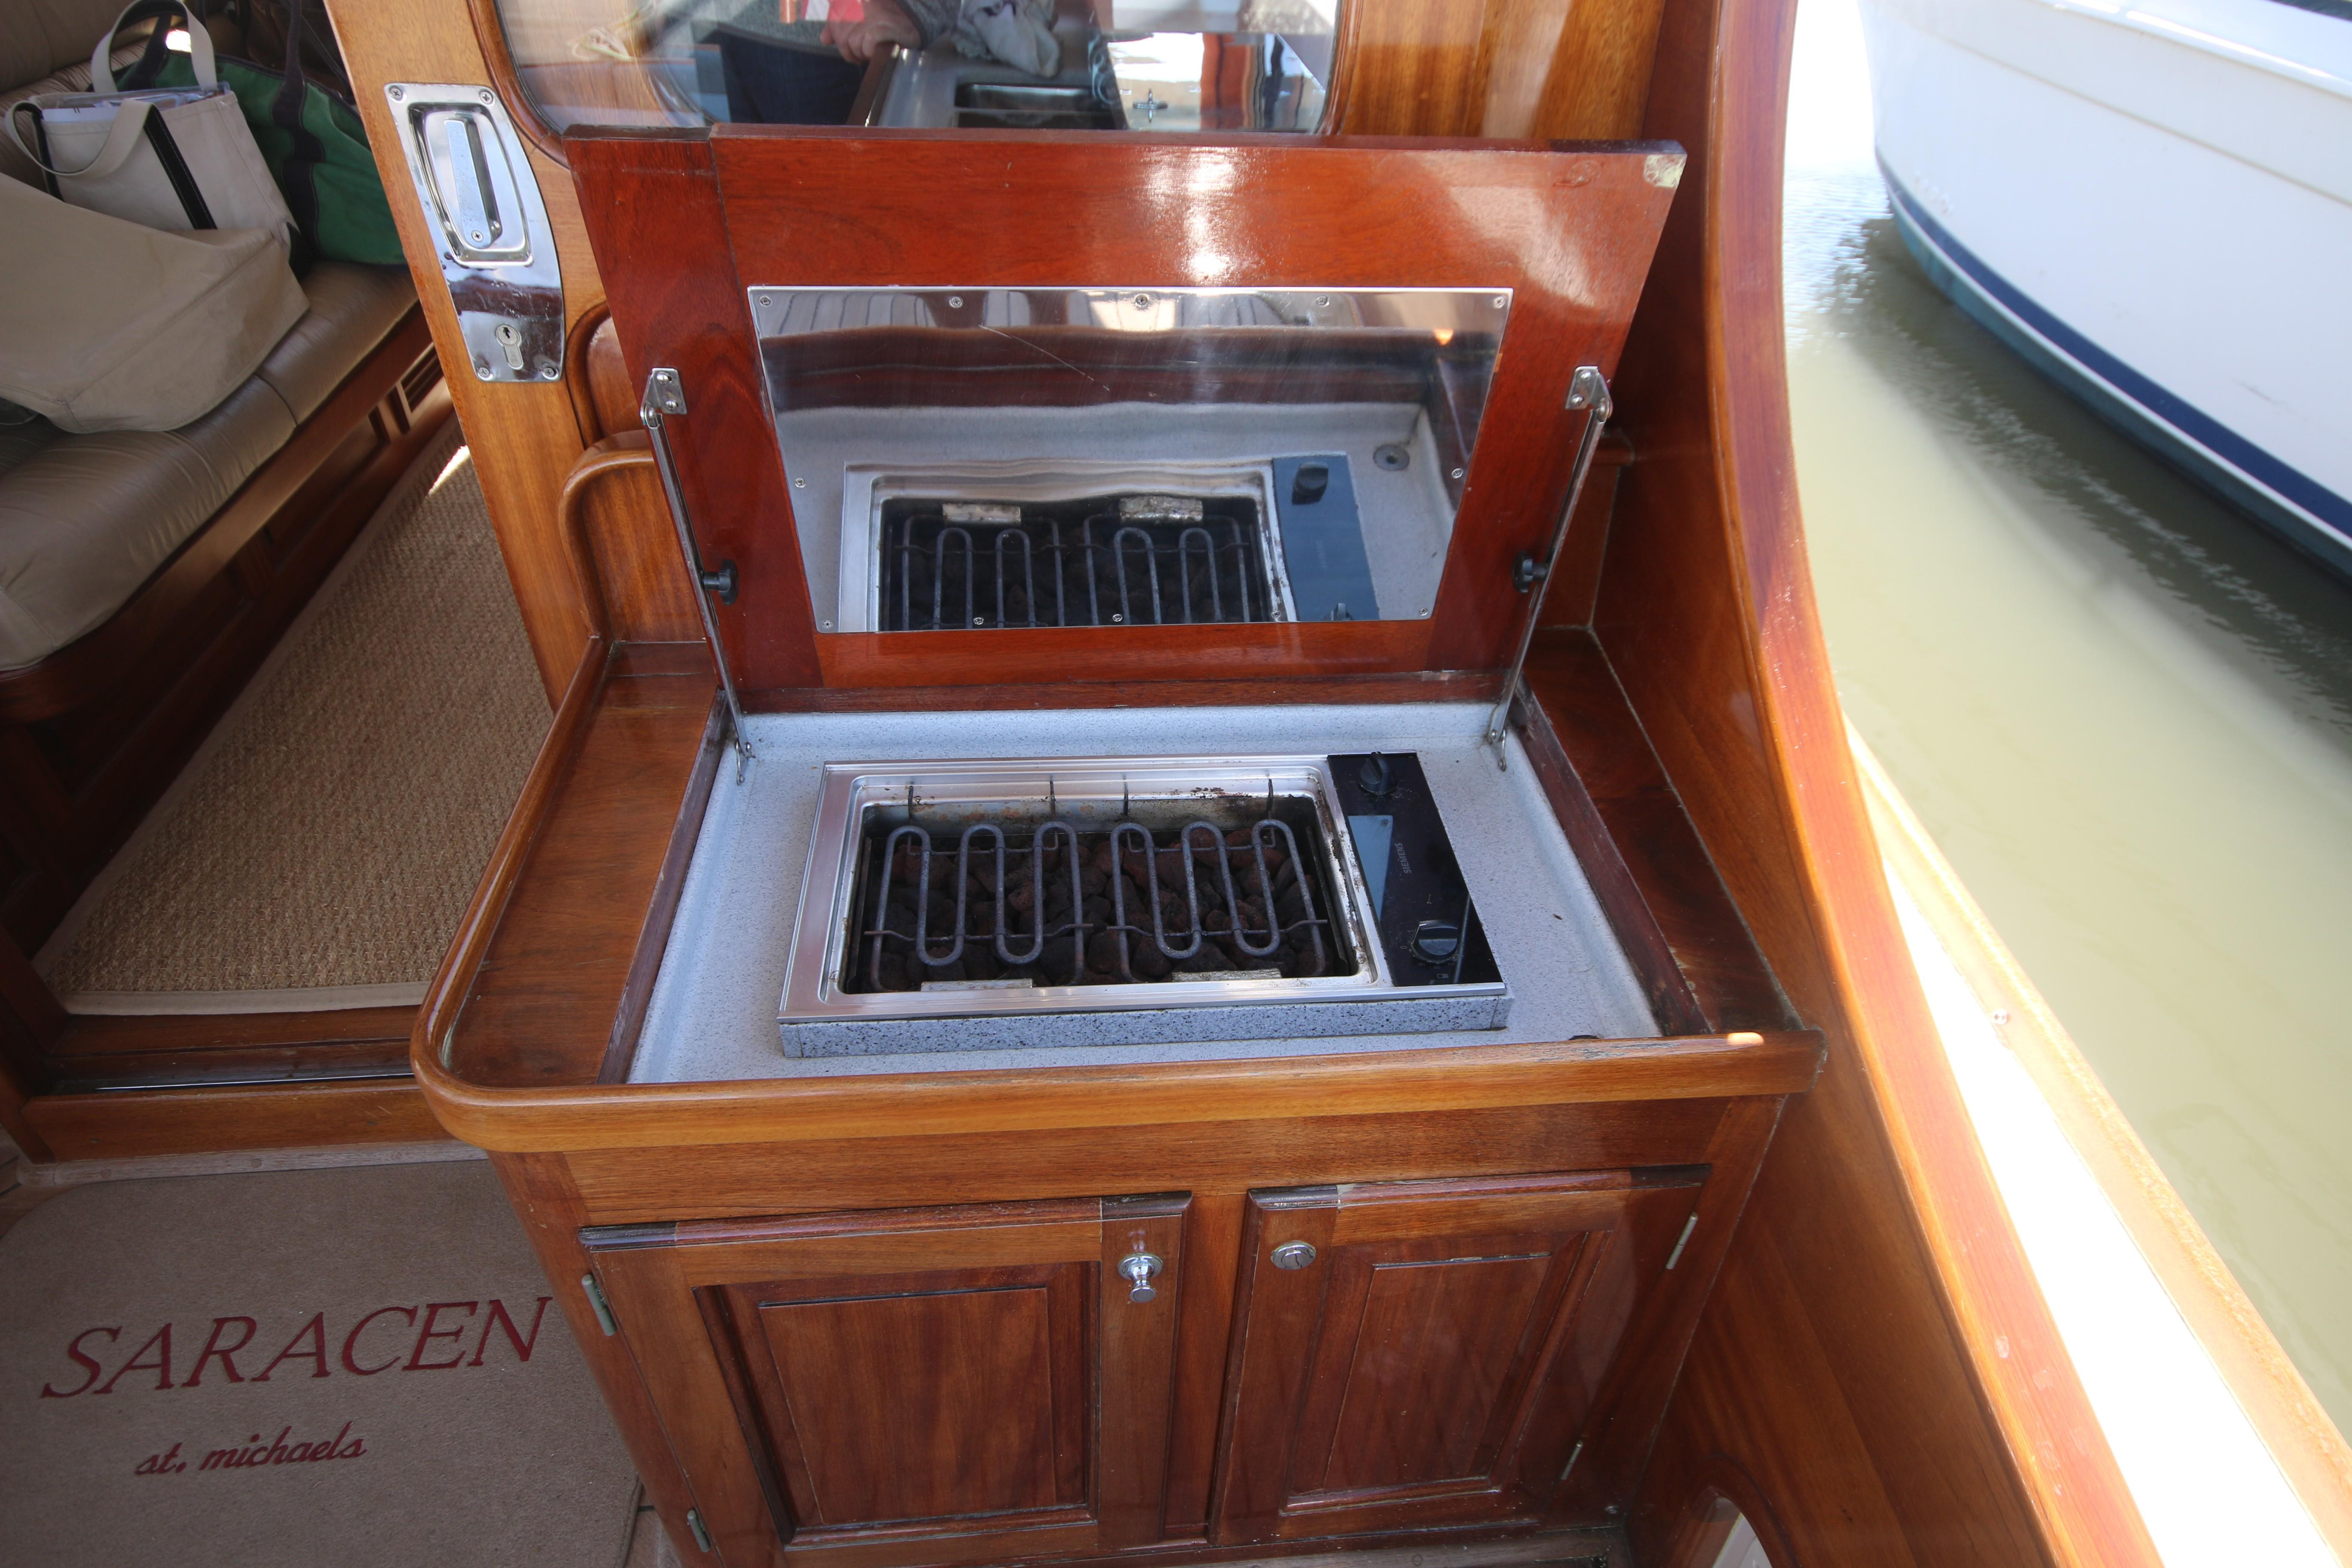 covered grill cabinet